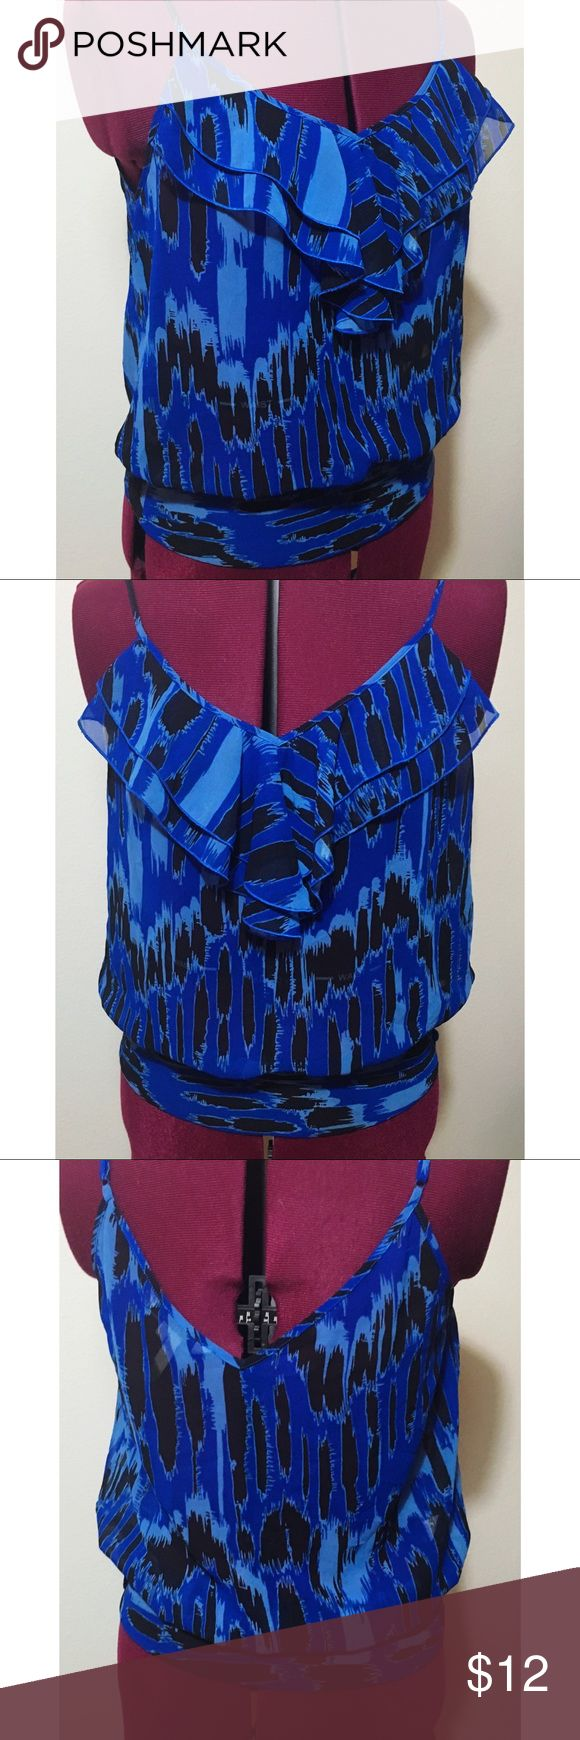 "Sleeveless Blouse by BCBGeneration Man made silk, v-neck line, ruffle accents. Blue color with a fun print. Adjustable straps. Slightly loose fit. Size S, but this brand tends to run big! Chest measurement is 30"". Great condition! BCBGeneration Tops Blouses"